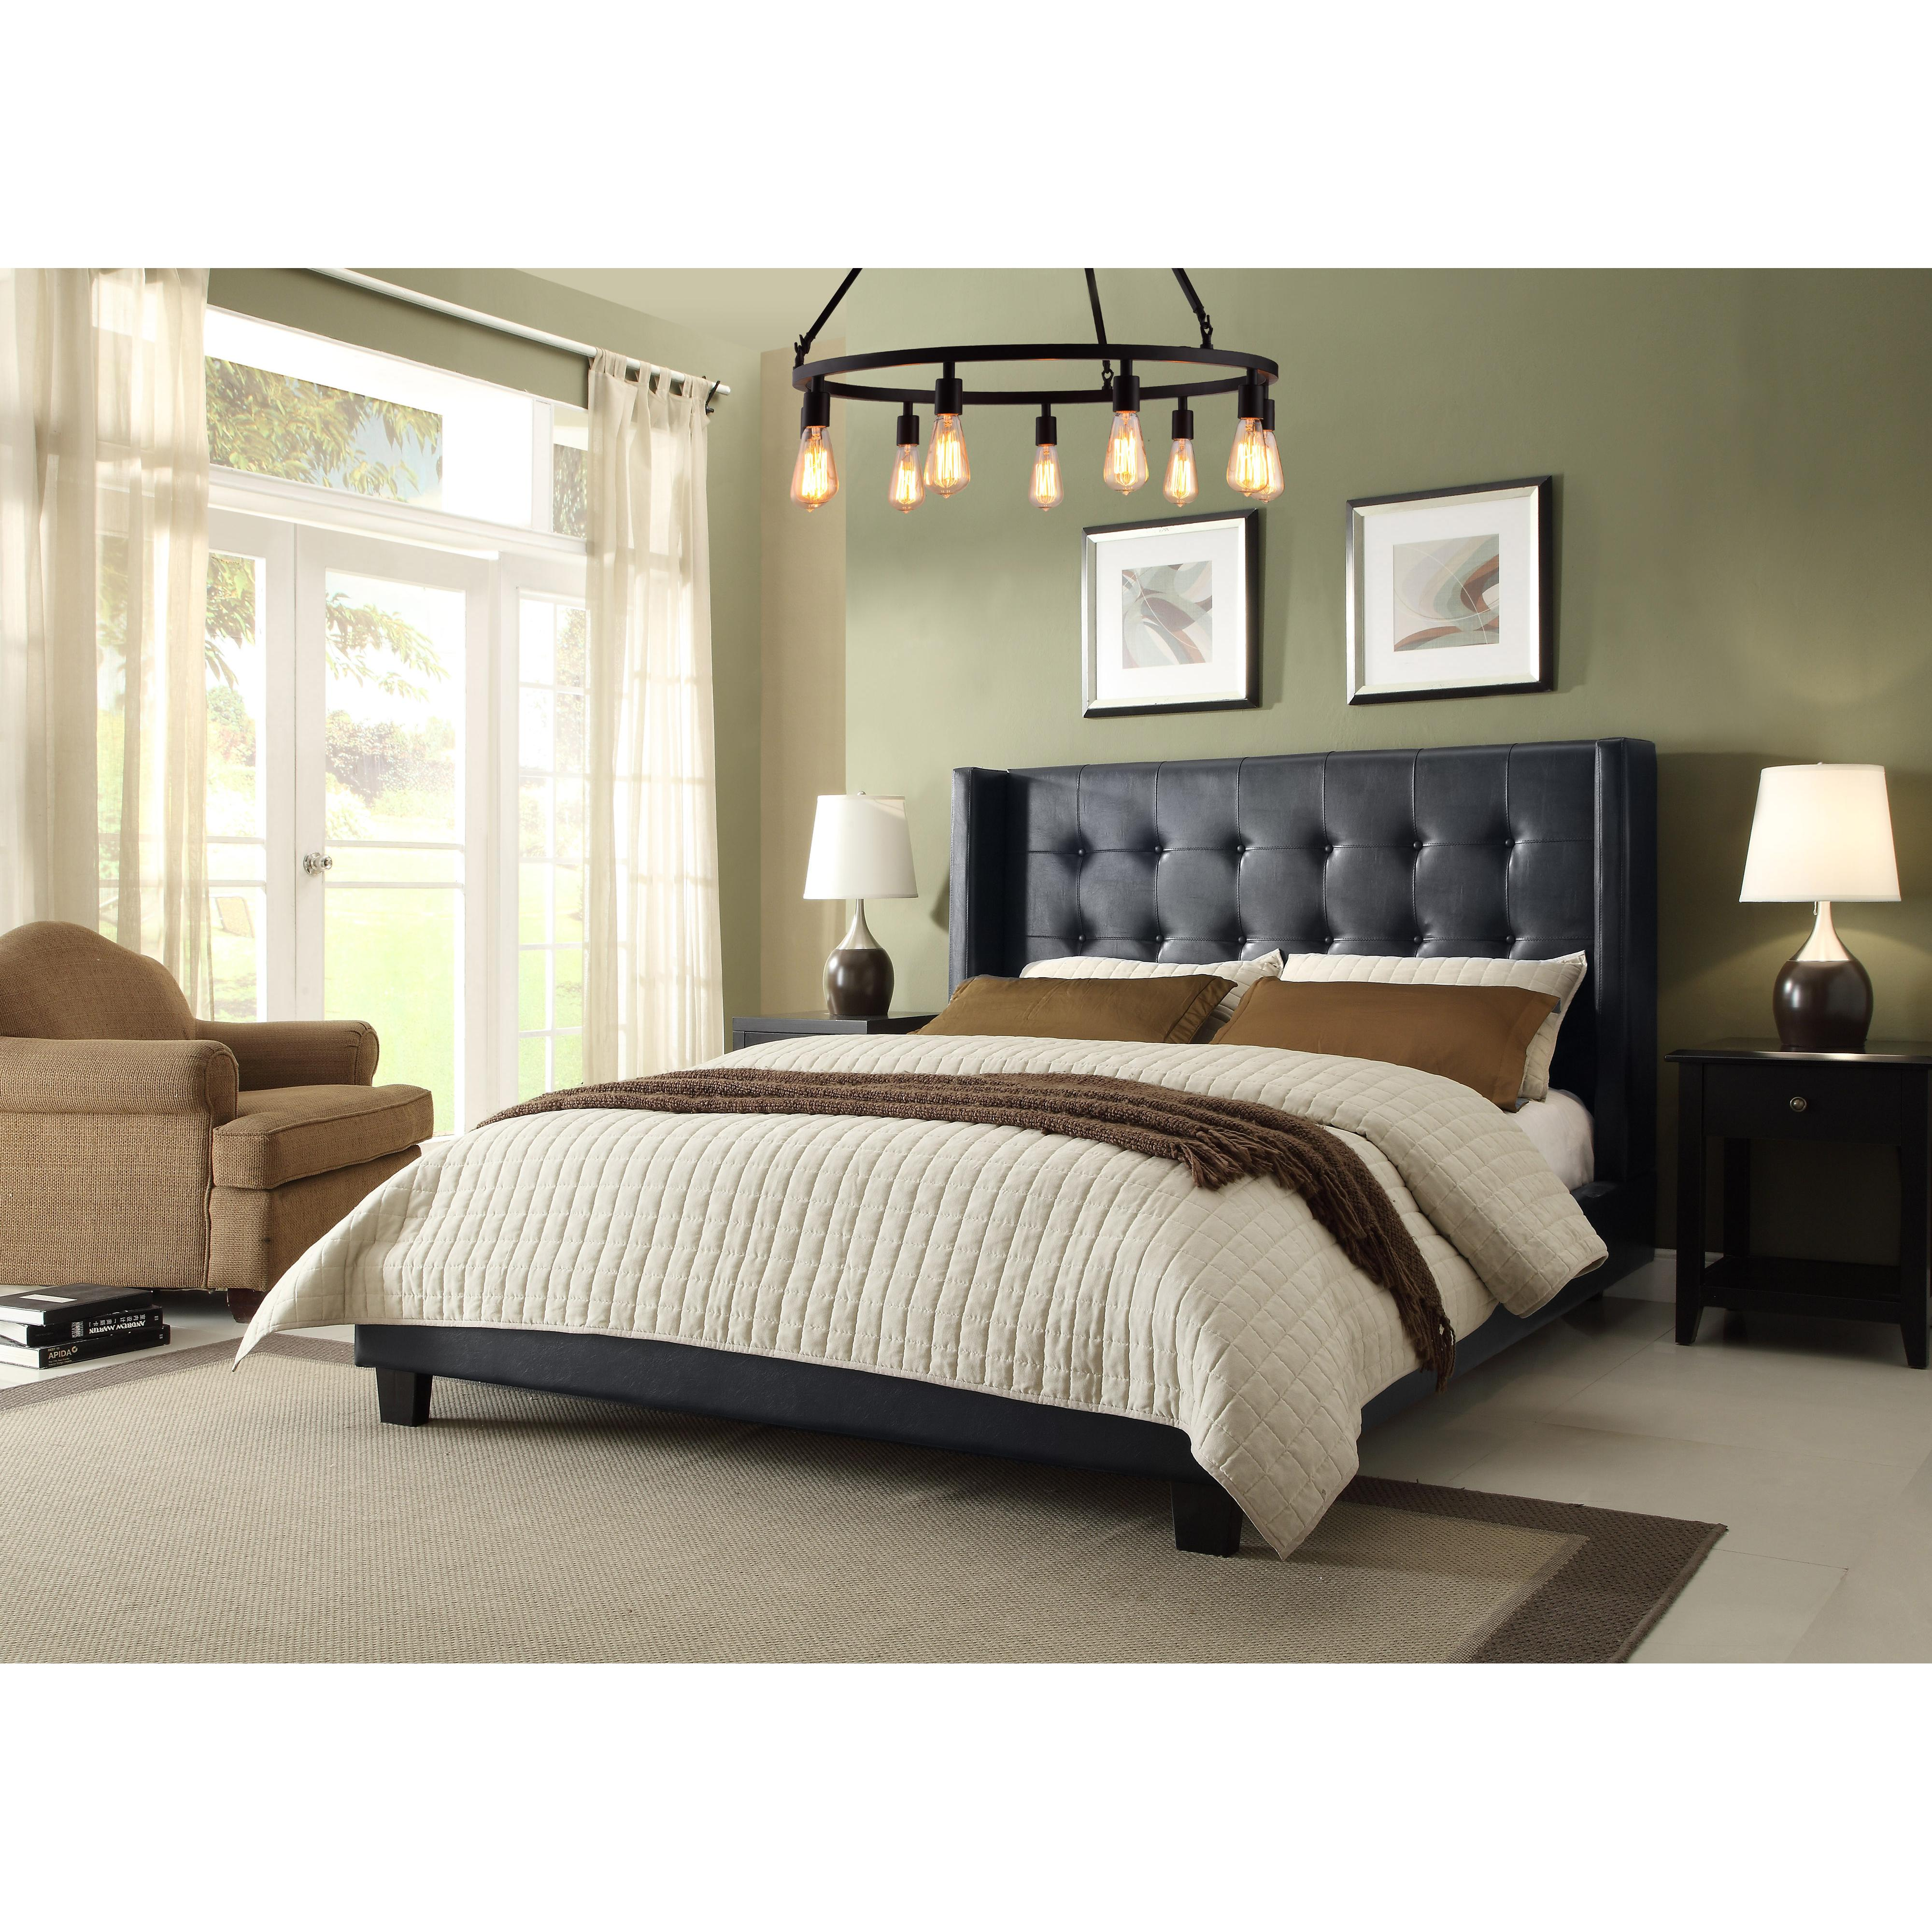 Diamond Sofa Madison Tufted Queen Bed with Tapered Wings - Item Number: MADISONBLQUBED